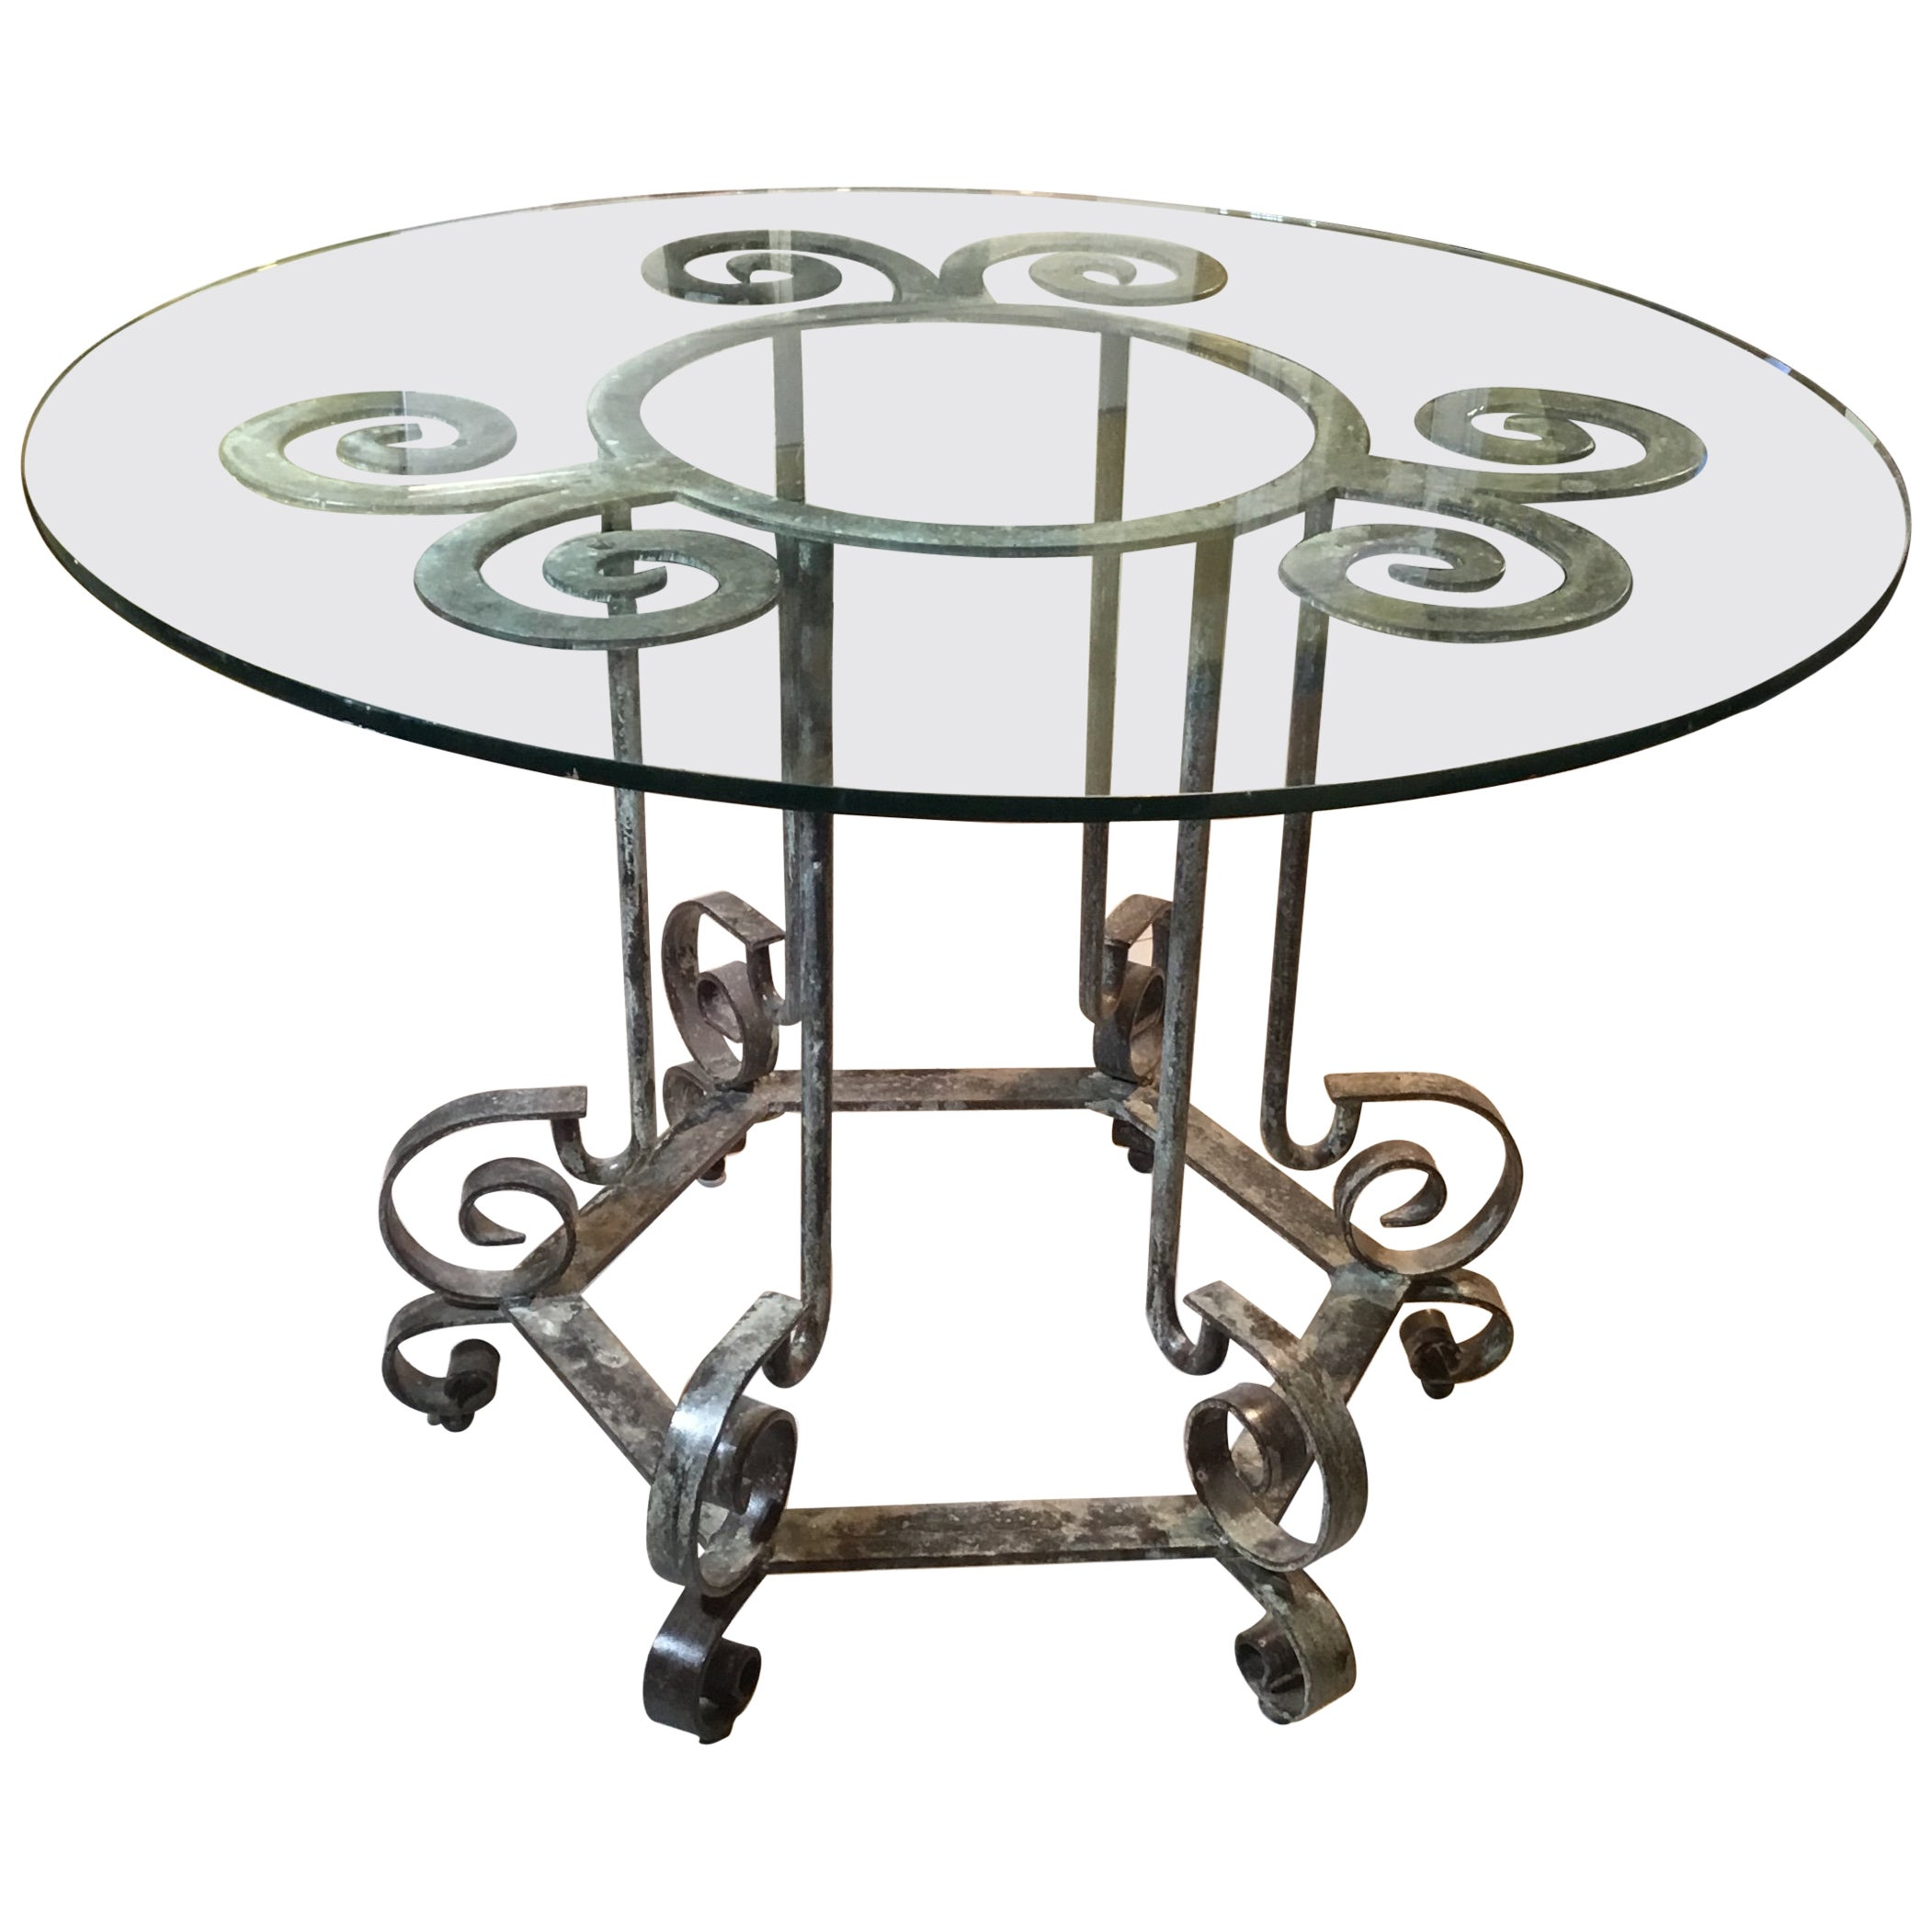 One of a Kind Iron Spiral Top Center Table